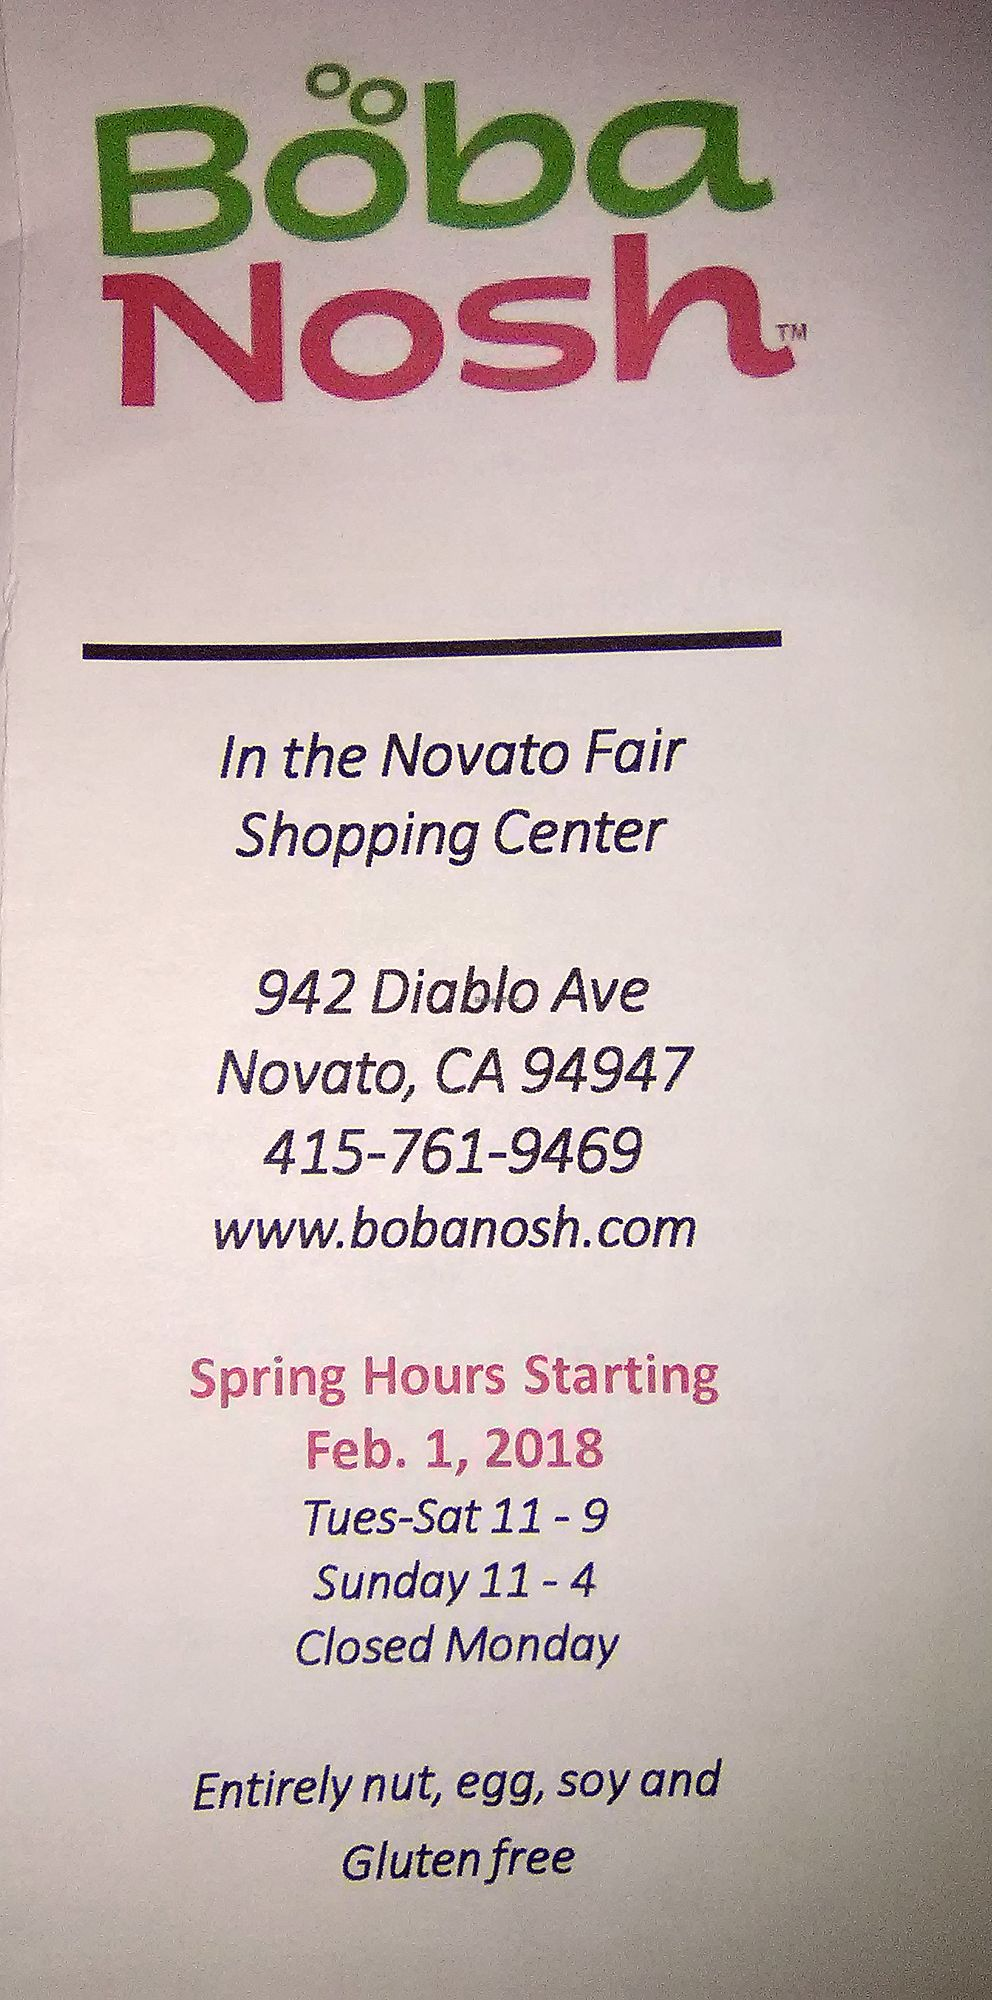 "Photo of Boba Nosh  by <a href=""/members/profile/mexivegan"">mexivegan</a> <br/>Menu cover for Boba Nosh <br/> February 14, 2018  - <a href='/contact/abuse/image/101282/359070'>Report</a>"